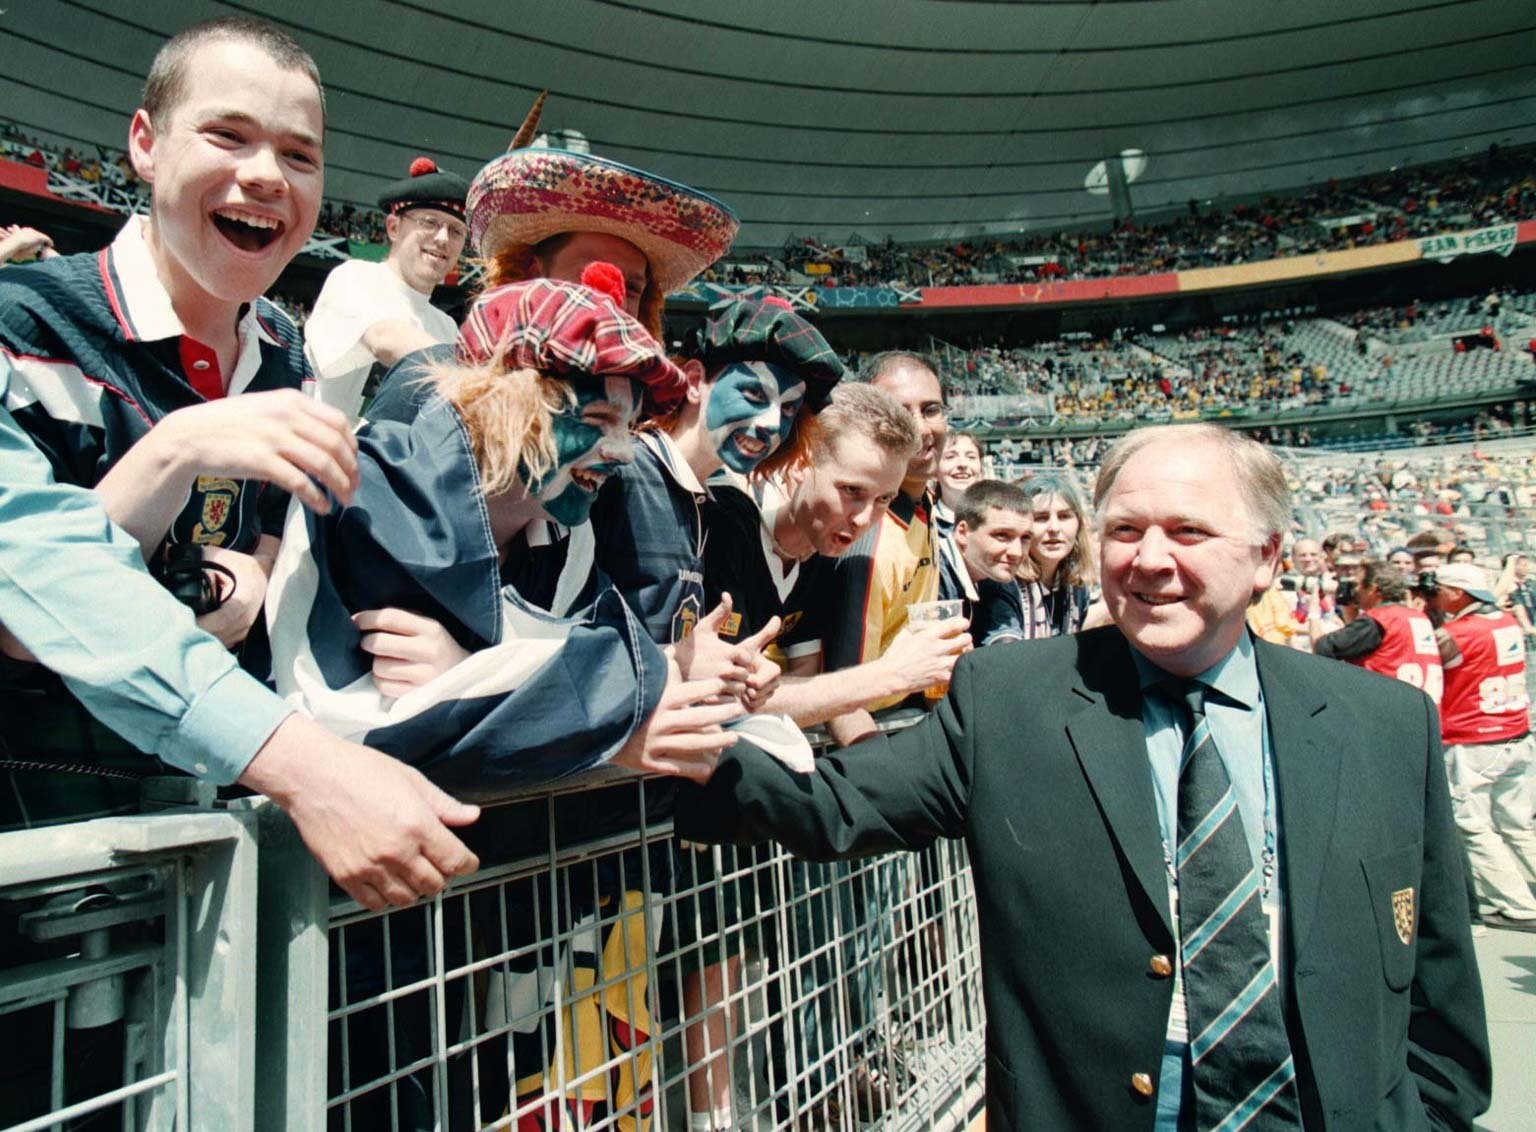 Craig Brown was the last man to lead Scotland to a major tournament - the 1998 World Cup.